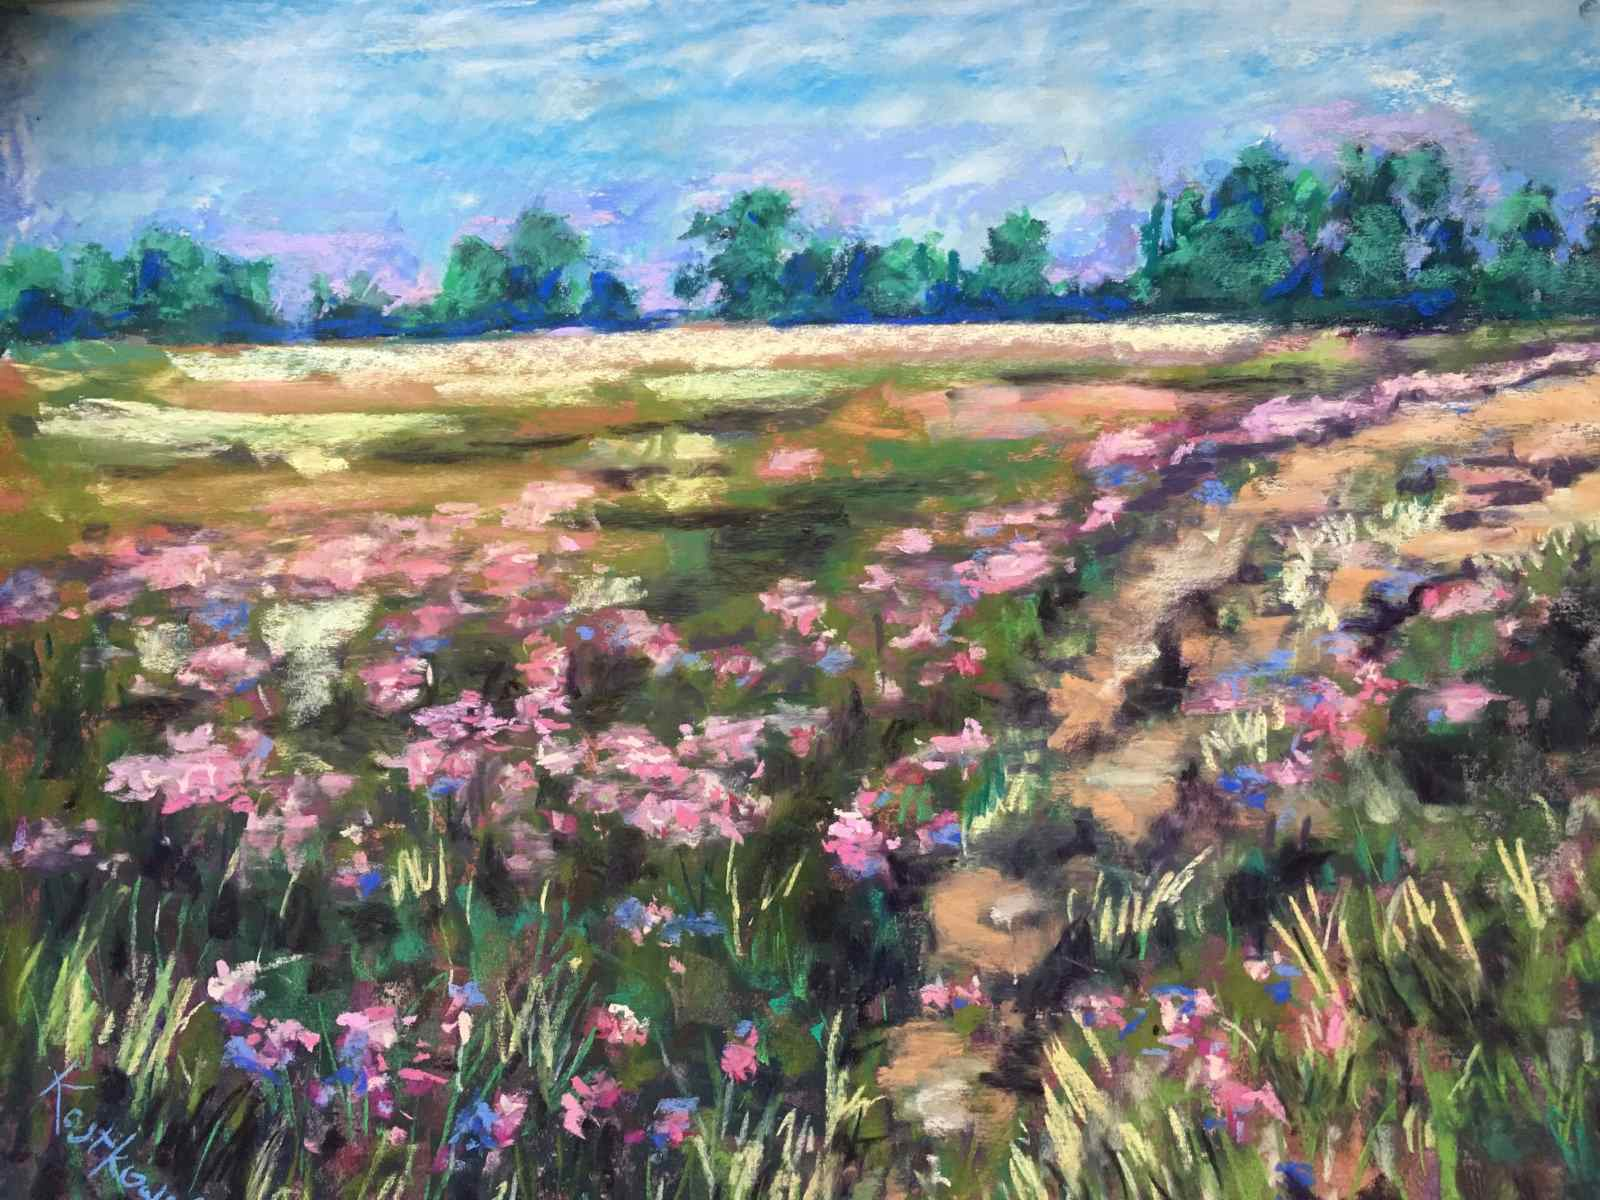 Phlox at Flat Rock Painting